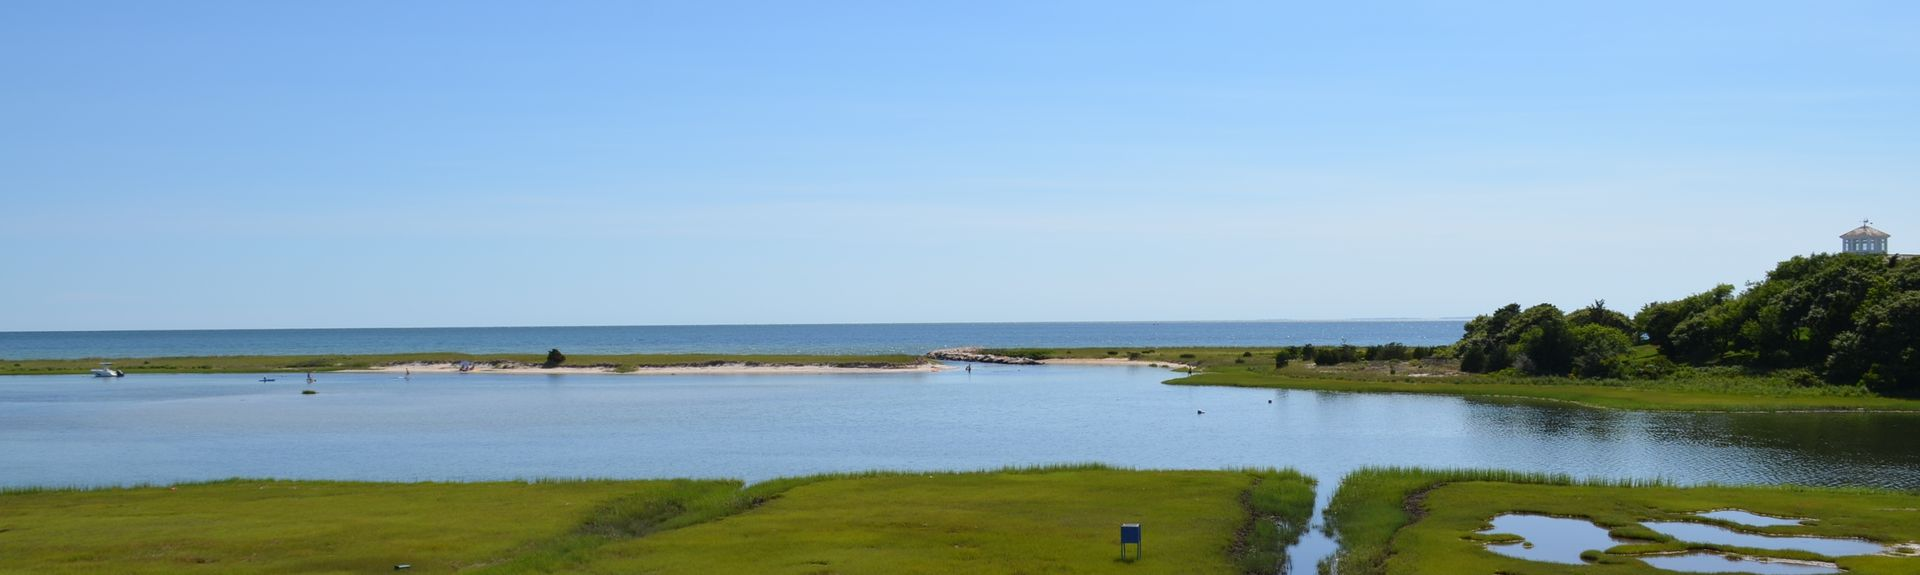 West Hyannisport, Barnstable, Massachusetts, Estados Unidos